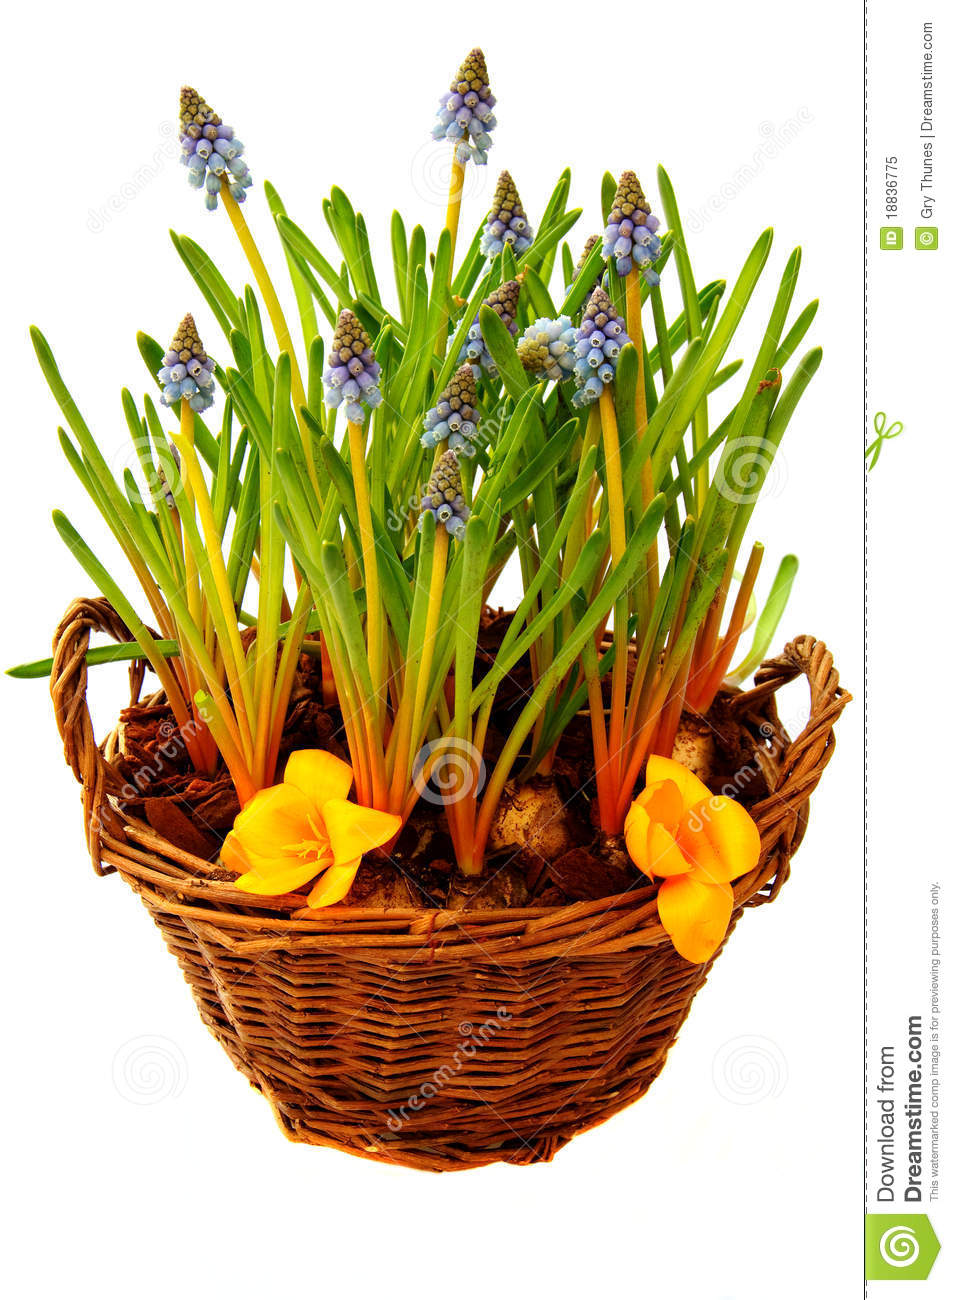 Flower Bulb Baskets : Basket with spring flowers stock image of bulbs